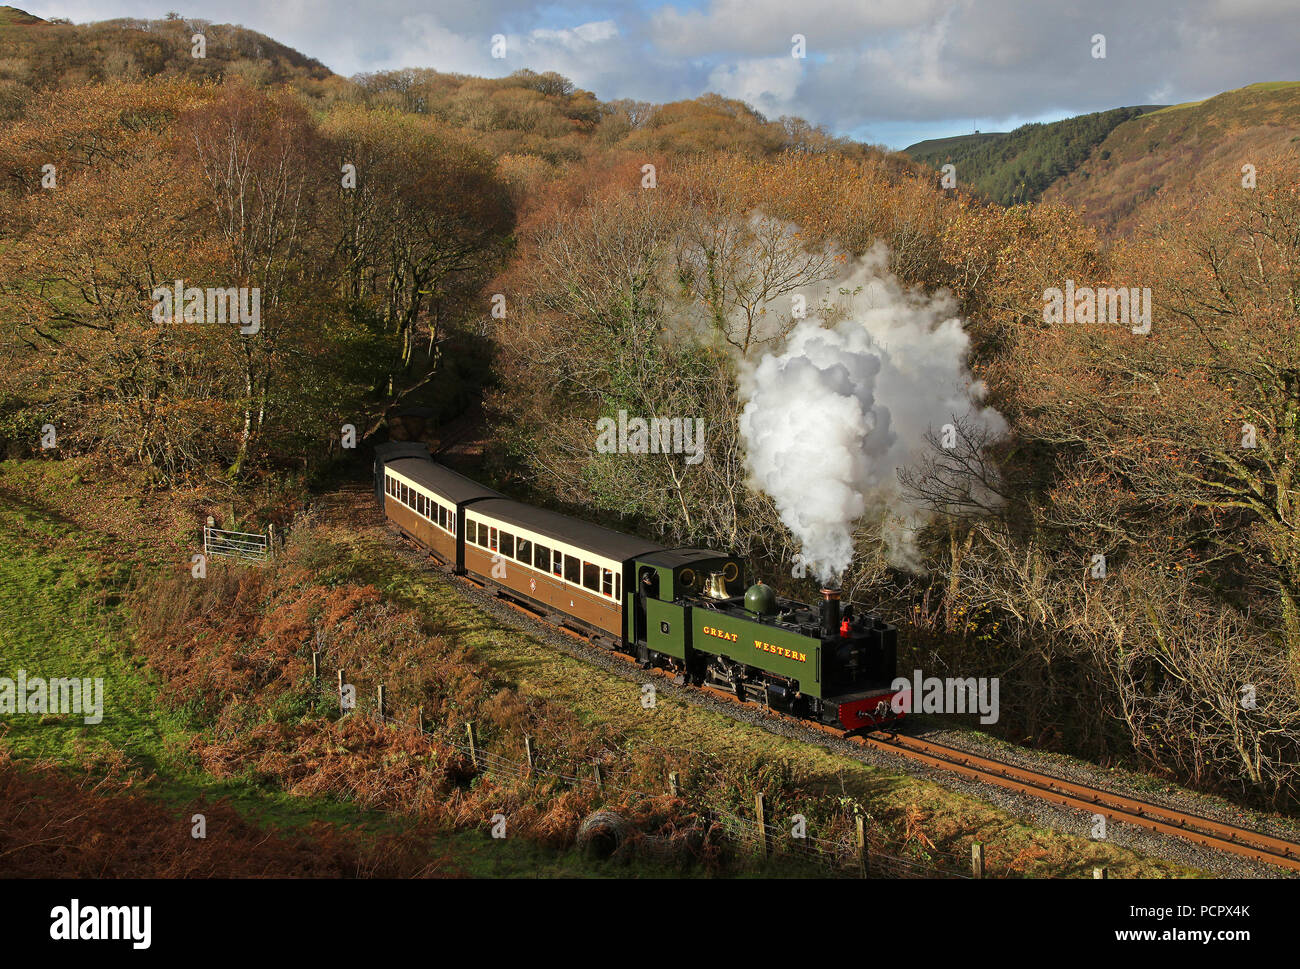 No8 approaches Devils Bridge on 10.11.17 on the Vale of Rheidol line. - Stock Image